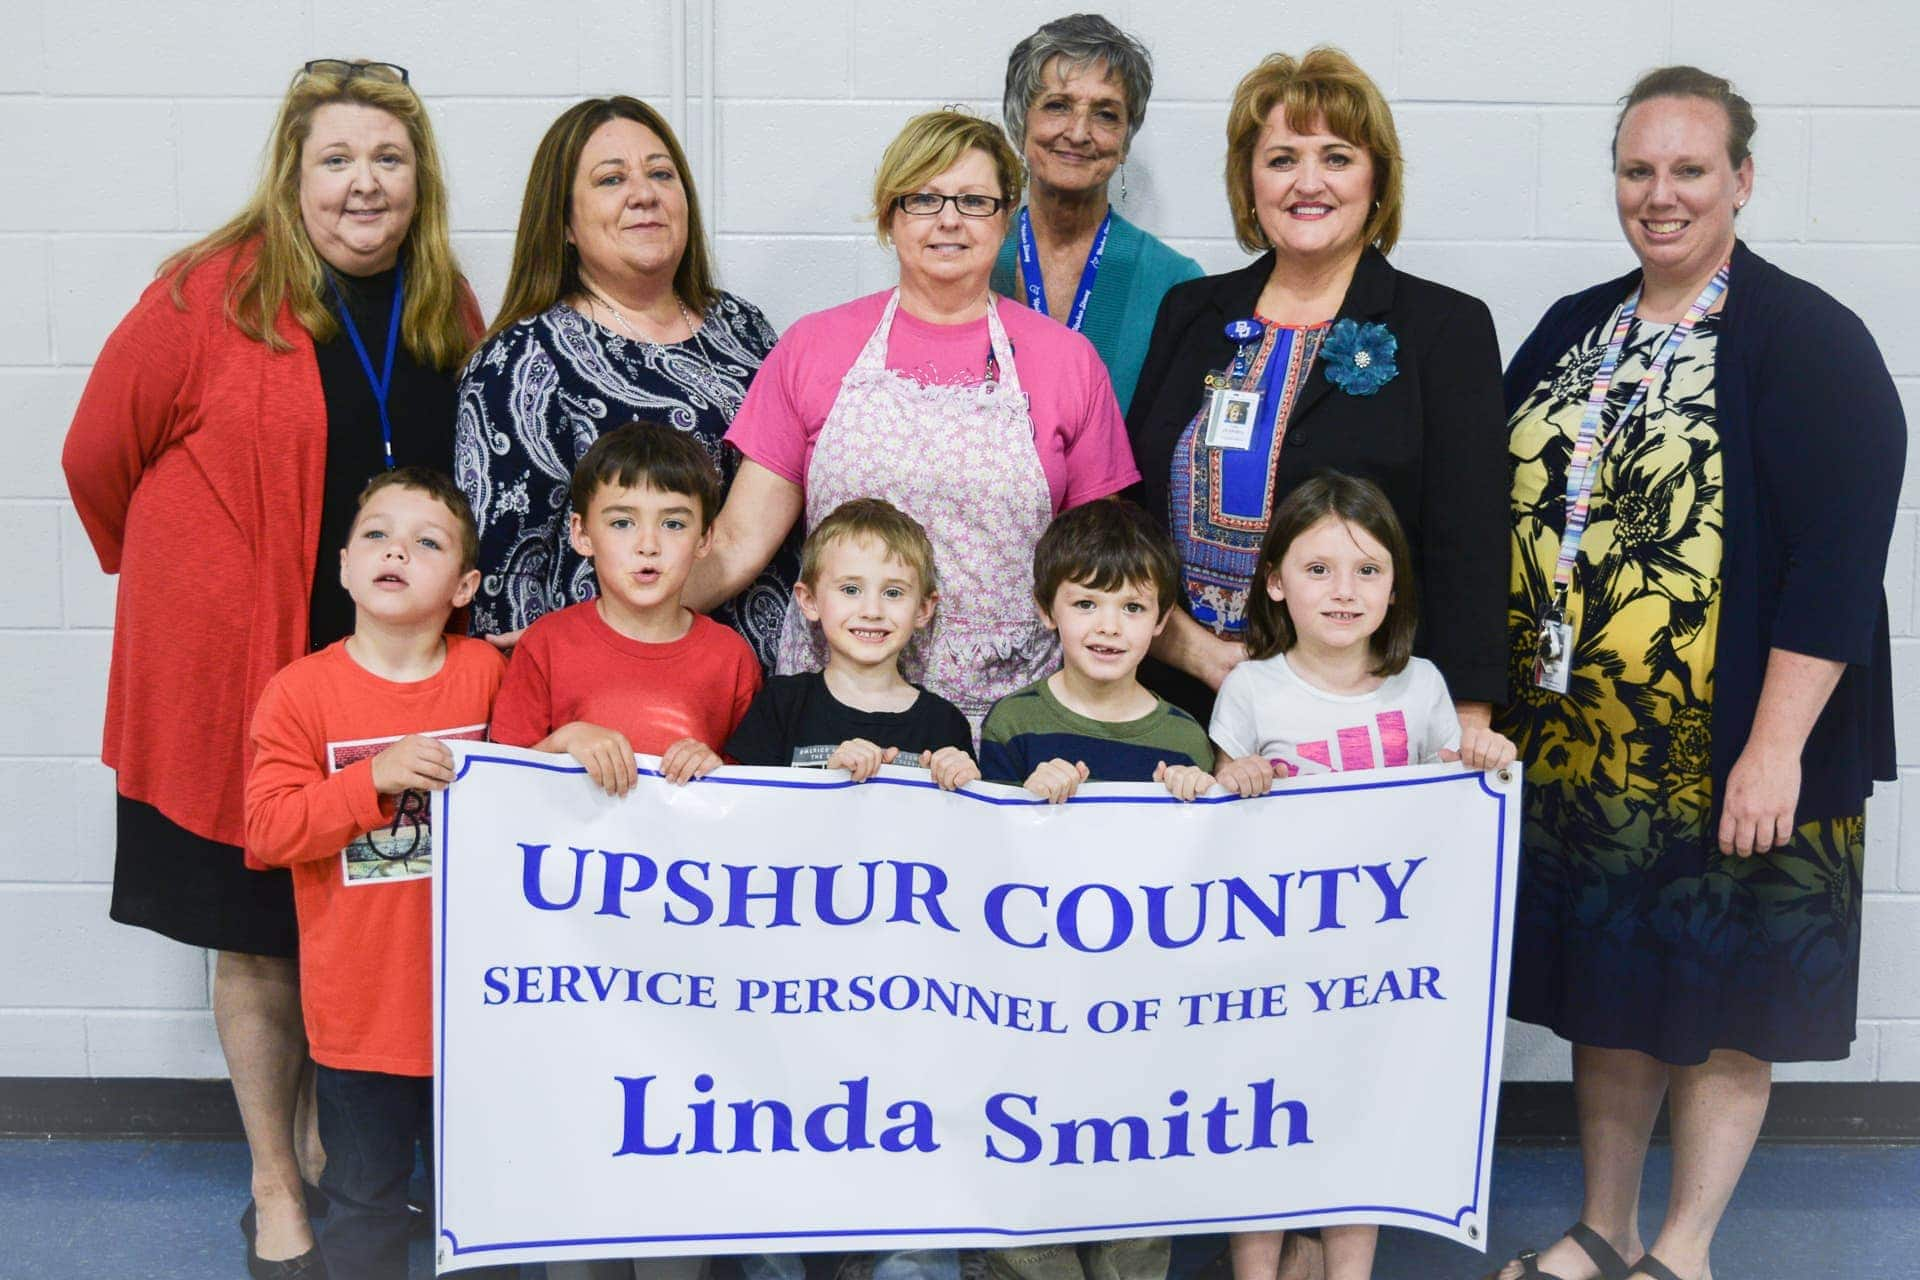 Linda Smith named Upshur County Schools Service Personnel of the Year